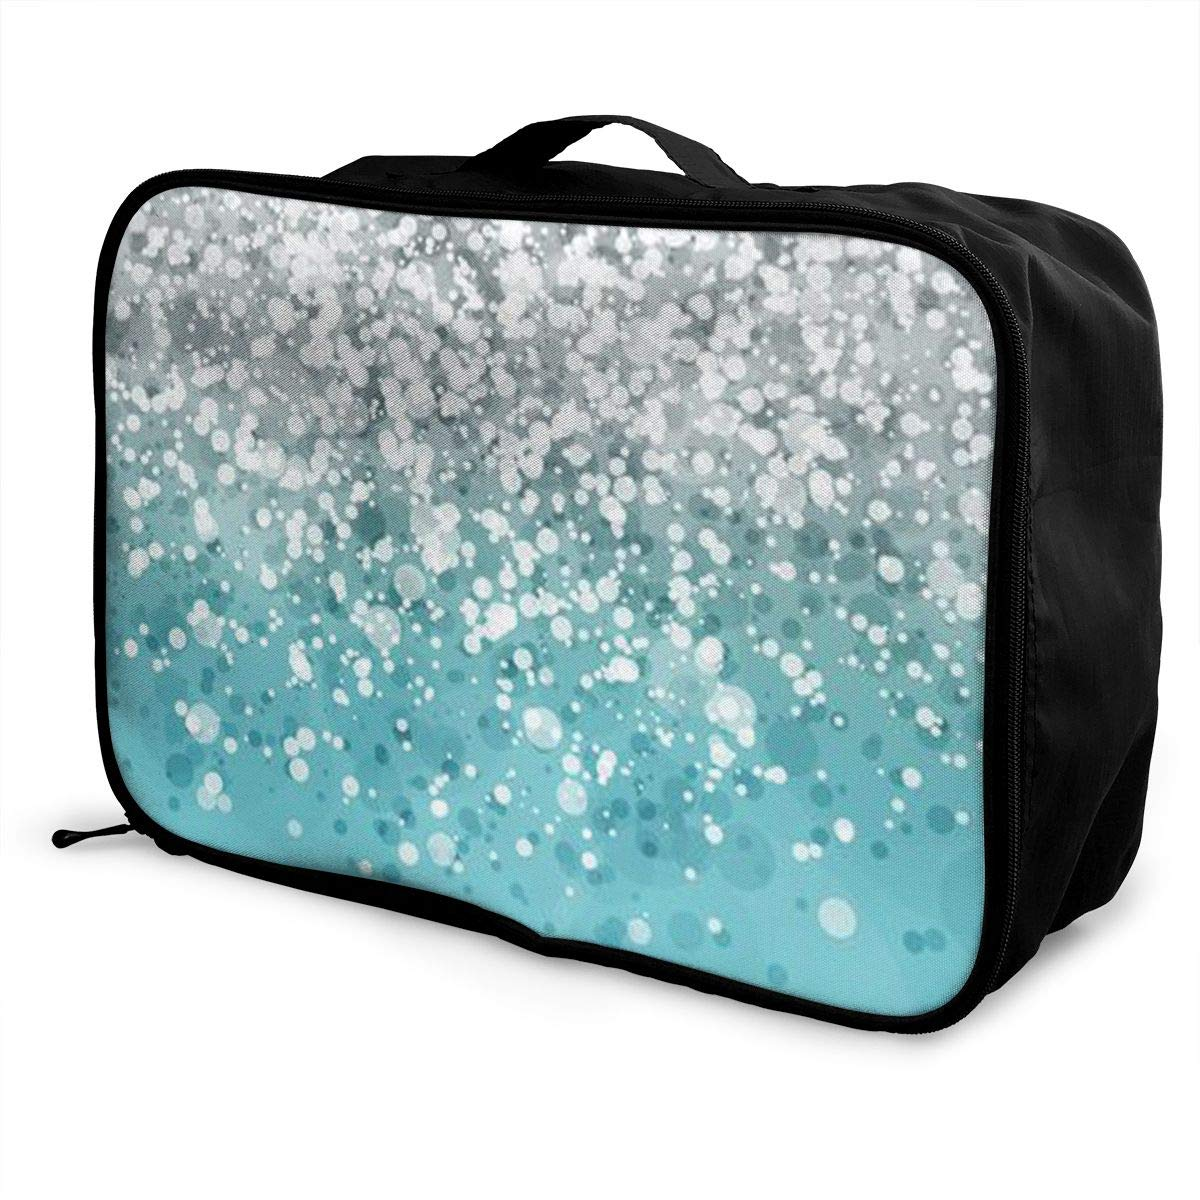 Silver Falling Sparkles On Light Blue Glitter Travel Duffel Bag Casual Large Capacity Portable Luggage Bag Suitcase Storage Bag Luggage Packing Tote Bag Weekend Trip